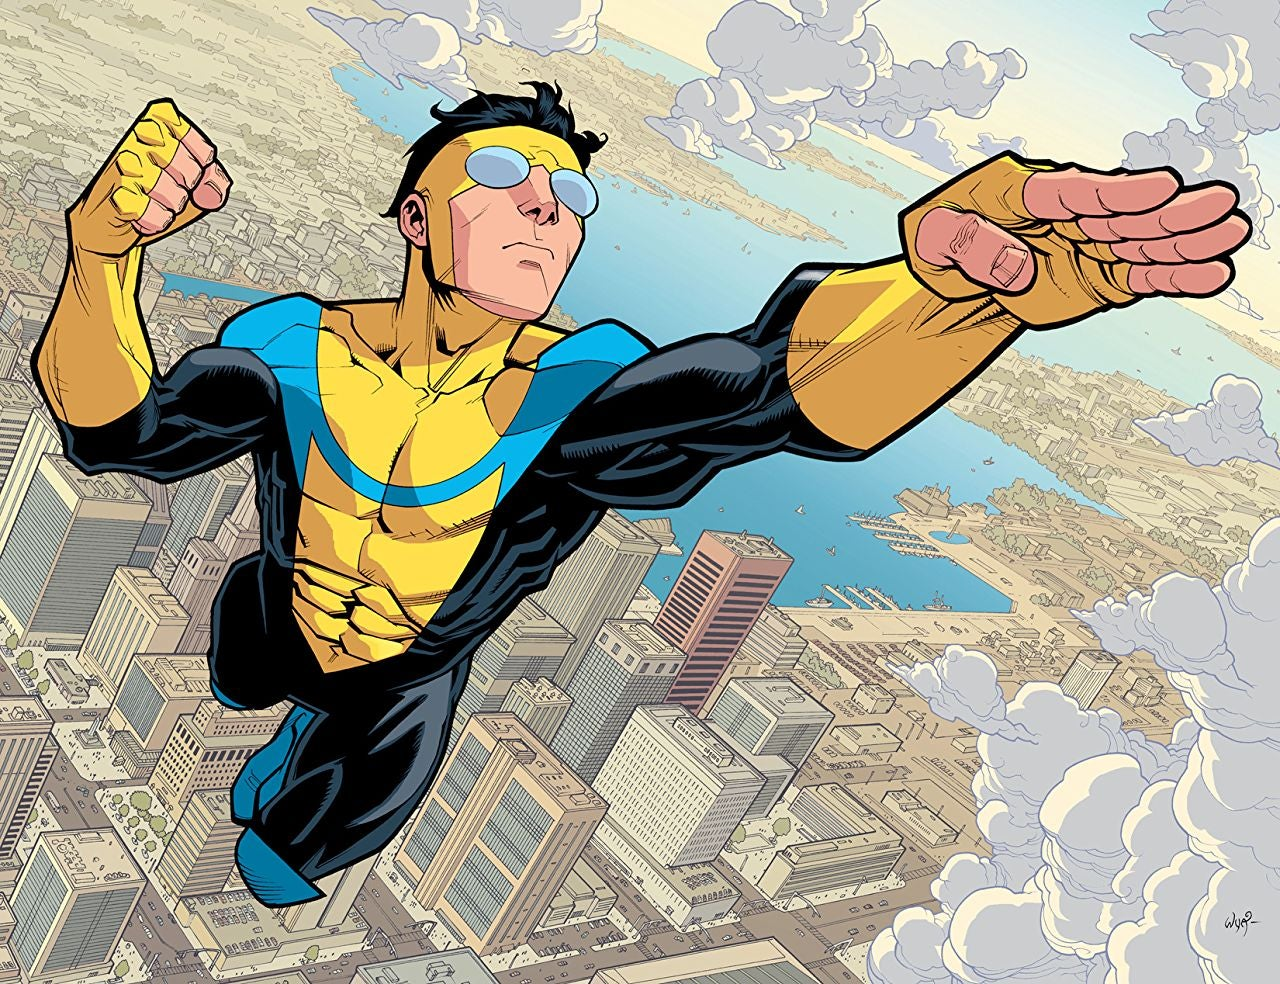 Seth Rogen And Evan Goldberg Are Turning Robert Kirkman's Comic Invincible Into A Movie